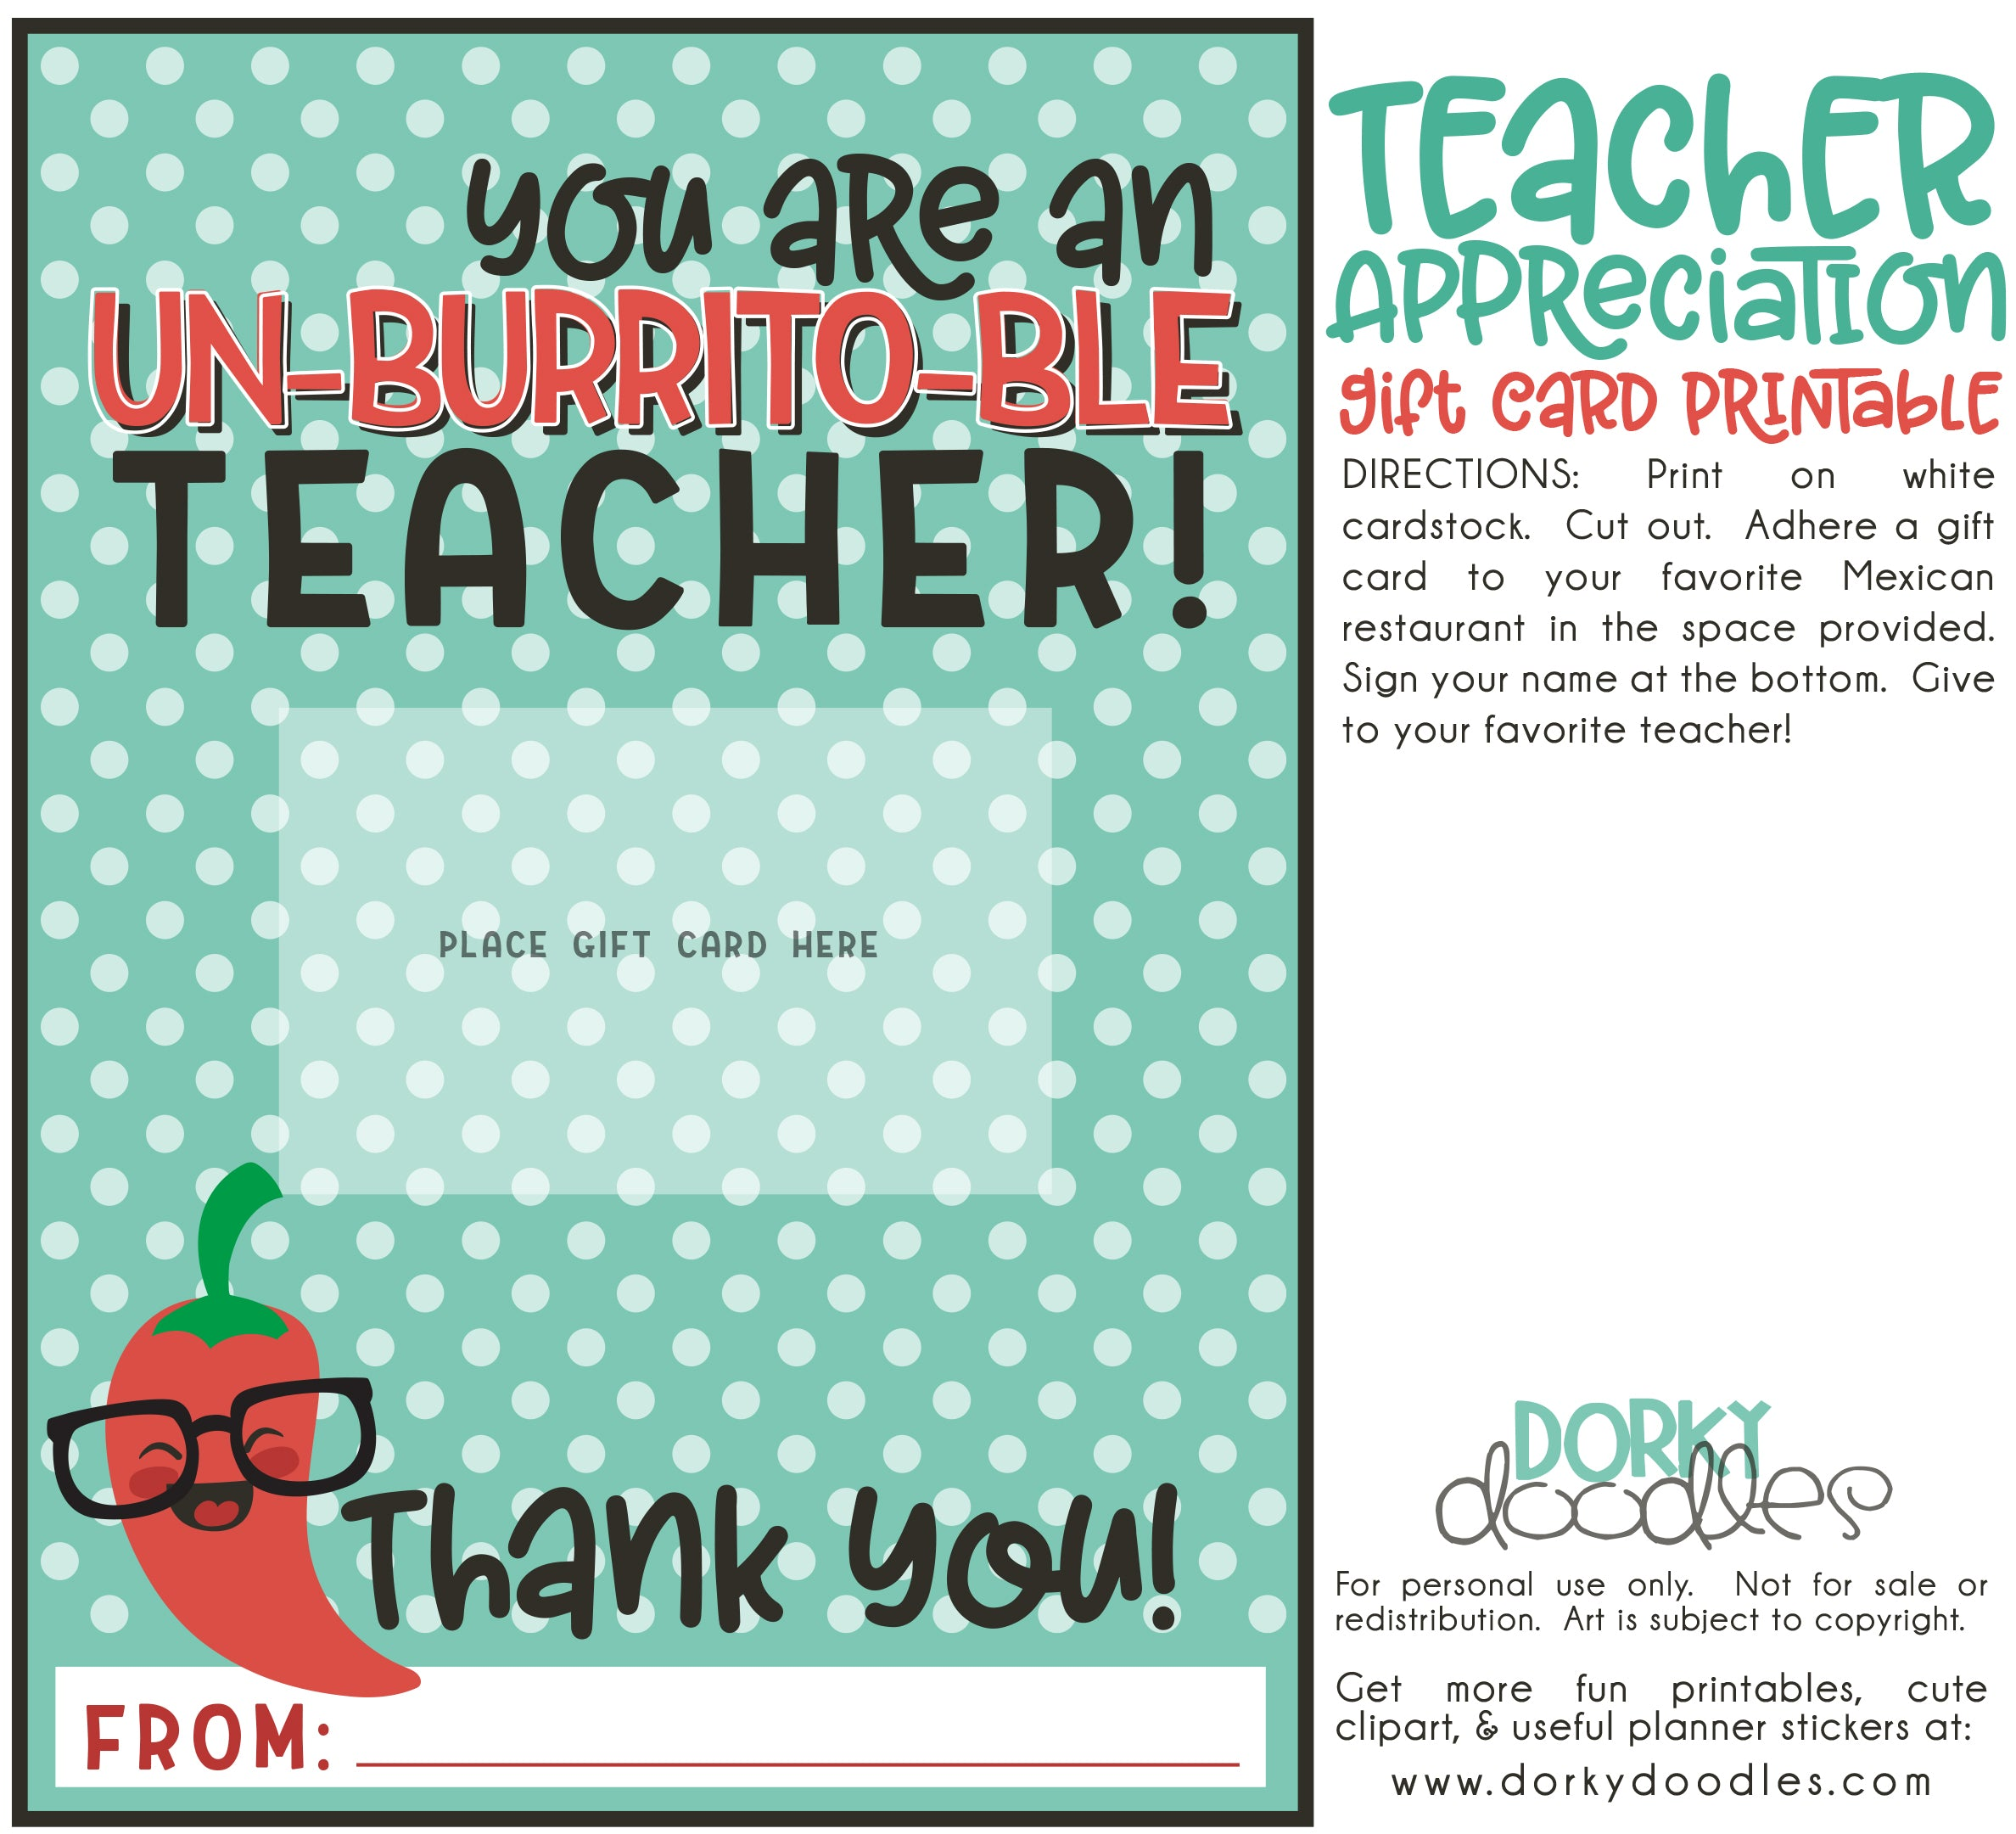 photograph relating to Teacher Appreciation Card Printable named Instructor Appreciation Reward Card Printable Dorky Doodles